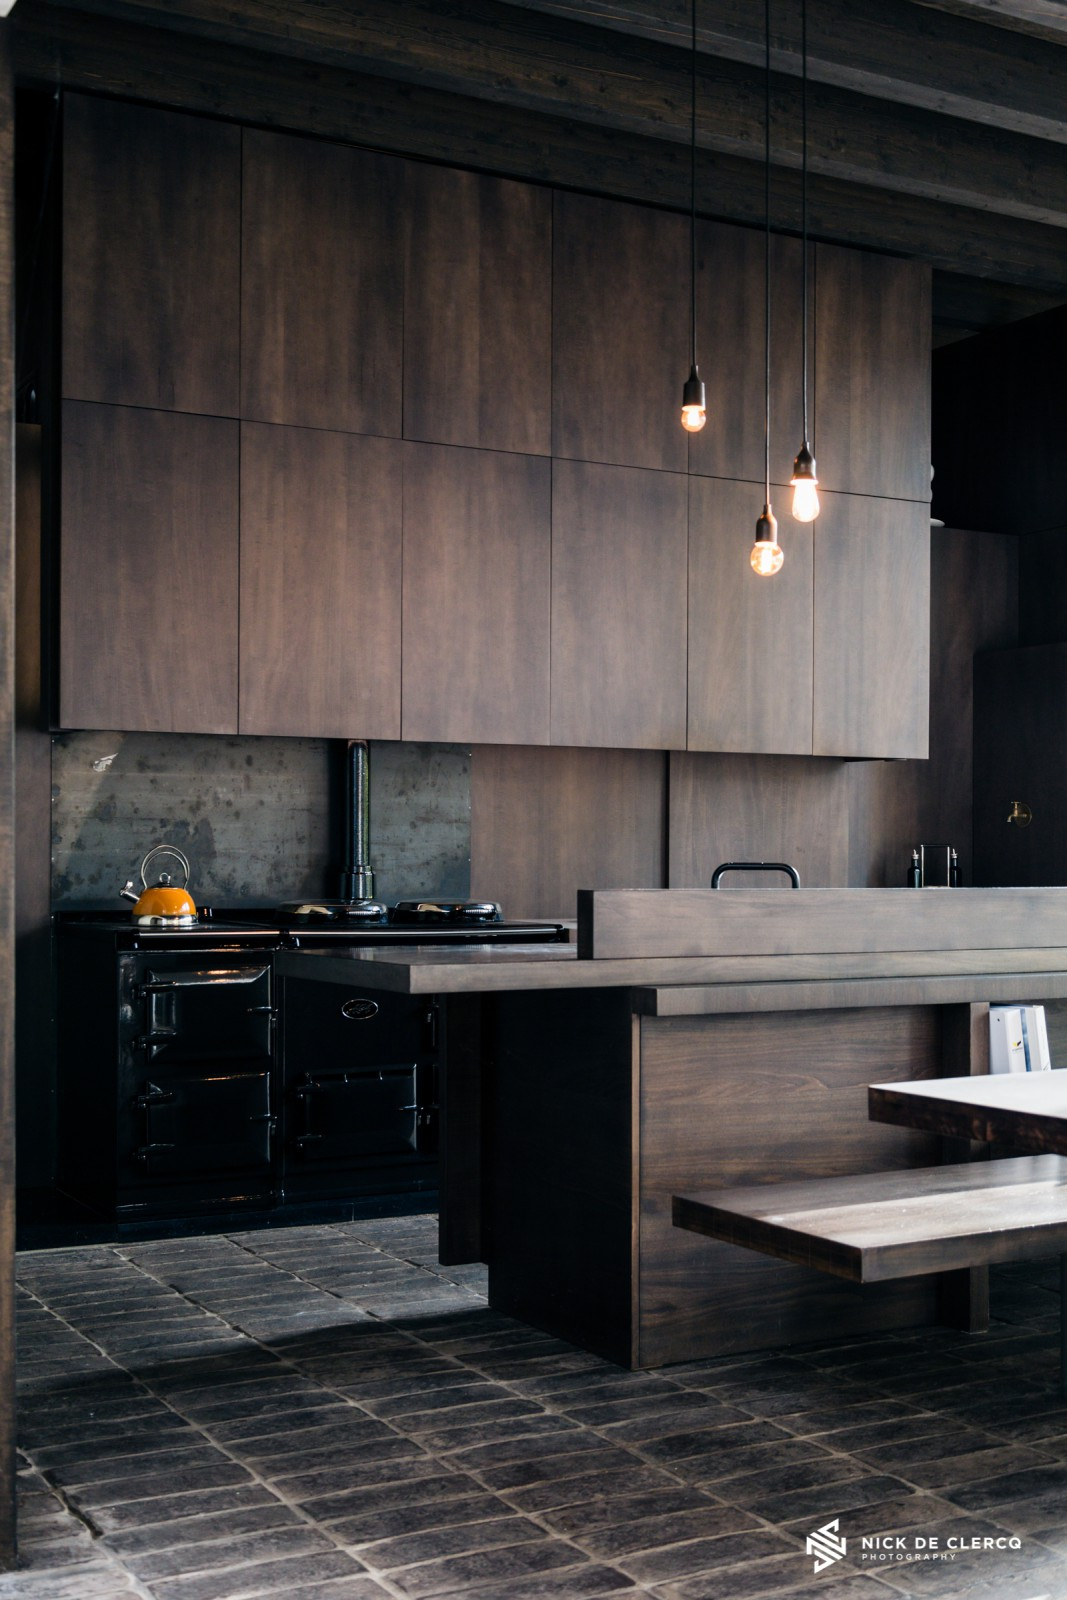 Wabi sabi architecture nick de clercq photography for Architectural design kitchens